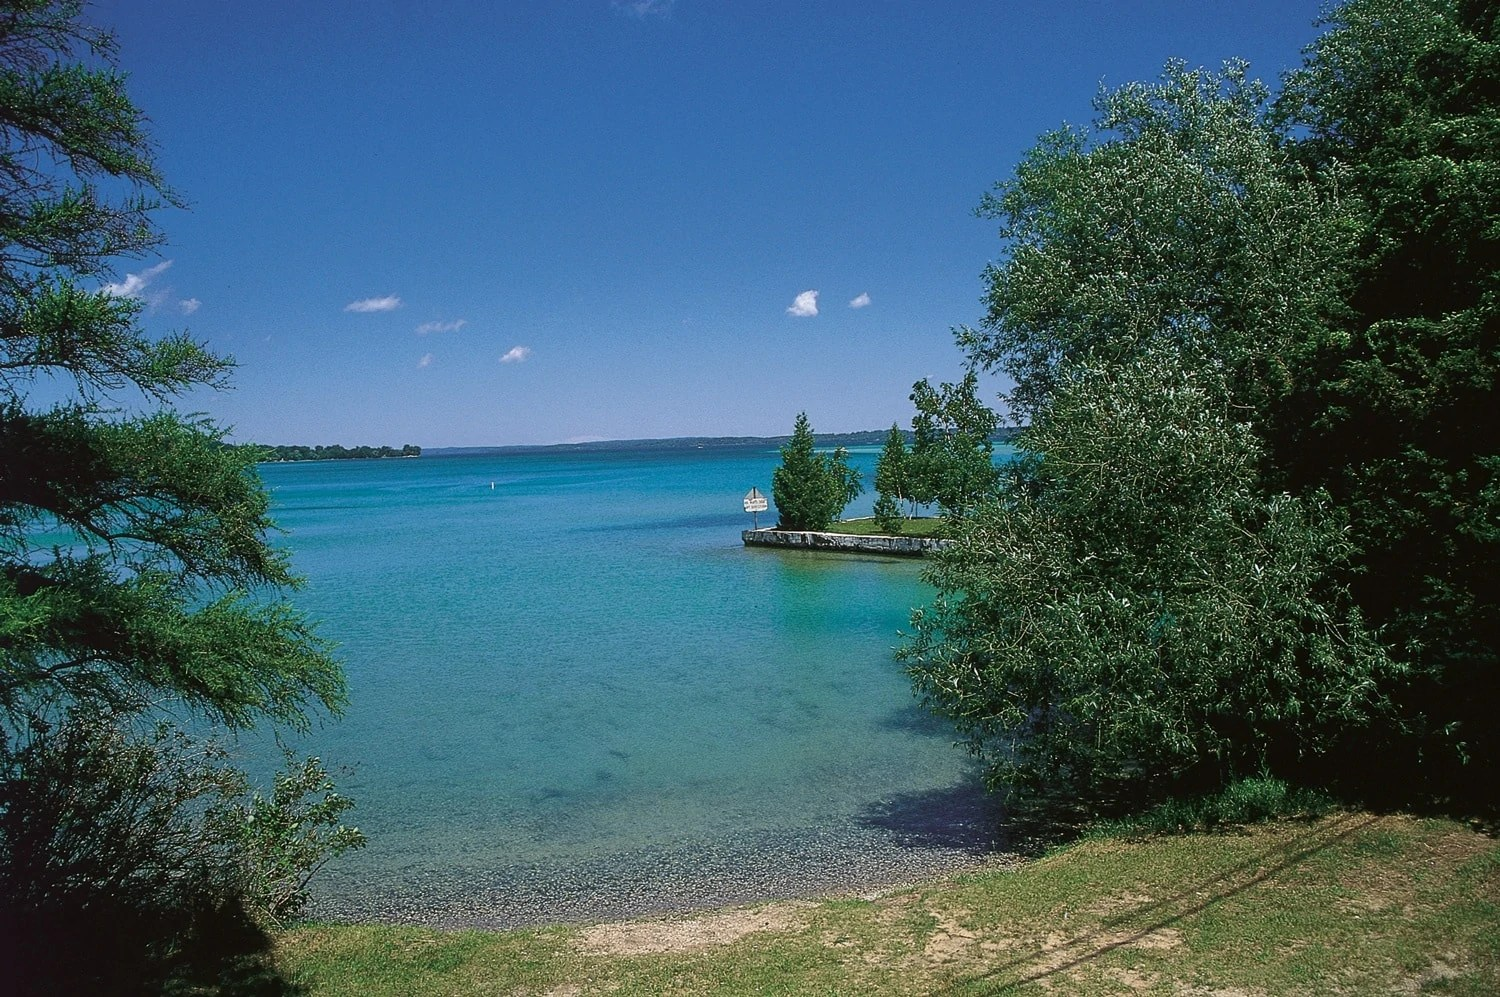 Iconic Outdoor Attraction Torch Lake in Northern Michigan  MyNorthcom